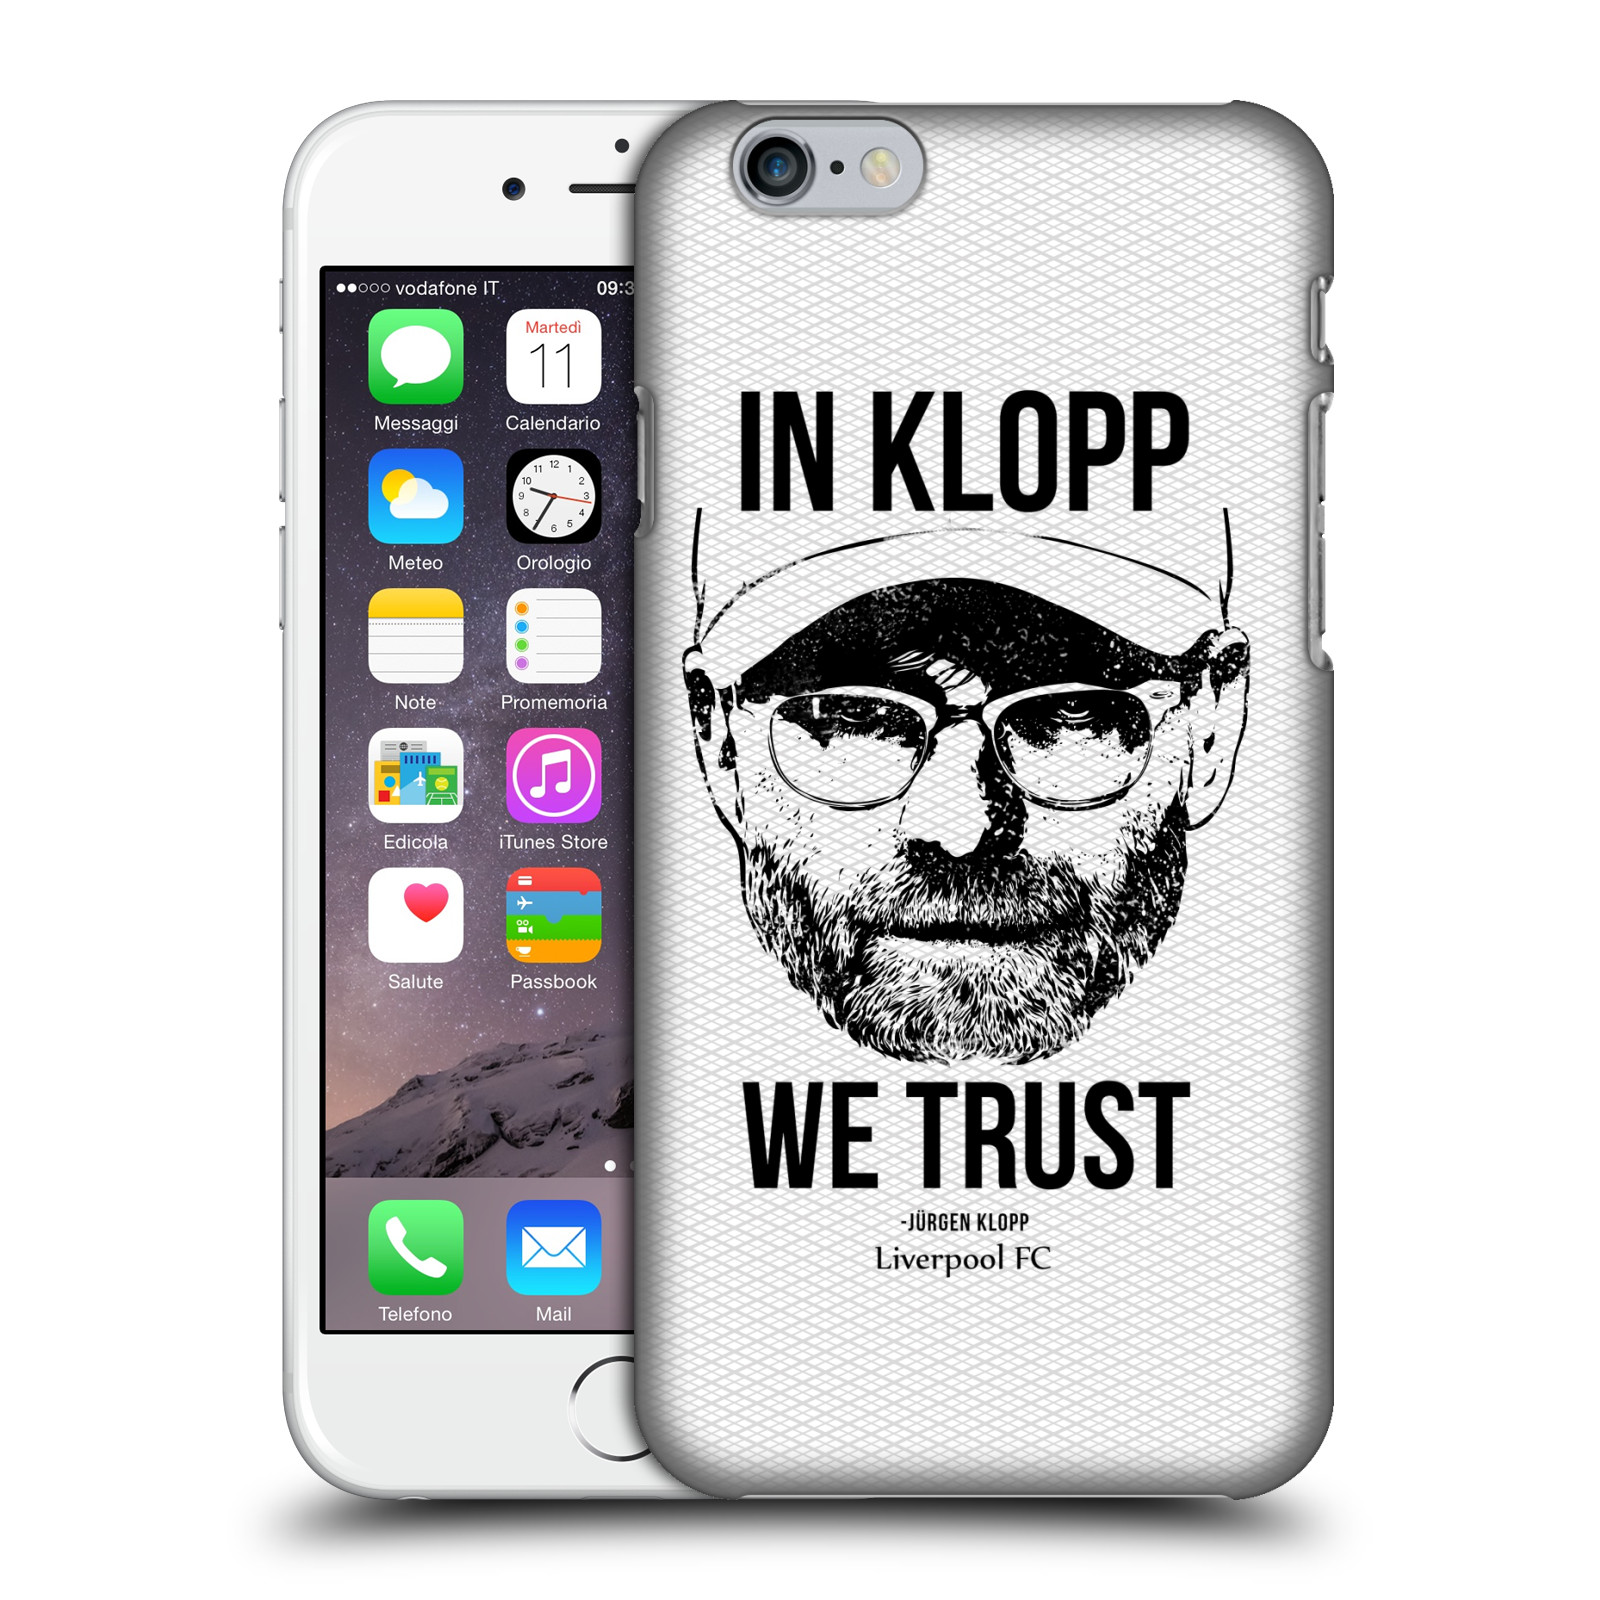 Liverpool FC LFC Jurgen Klopp Illustrations-Full Face White